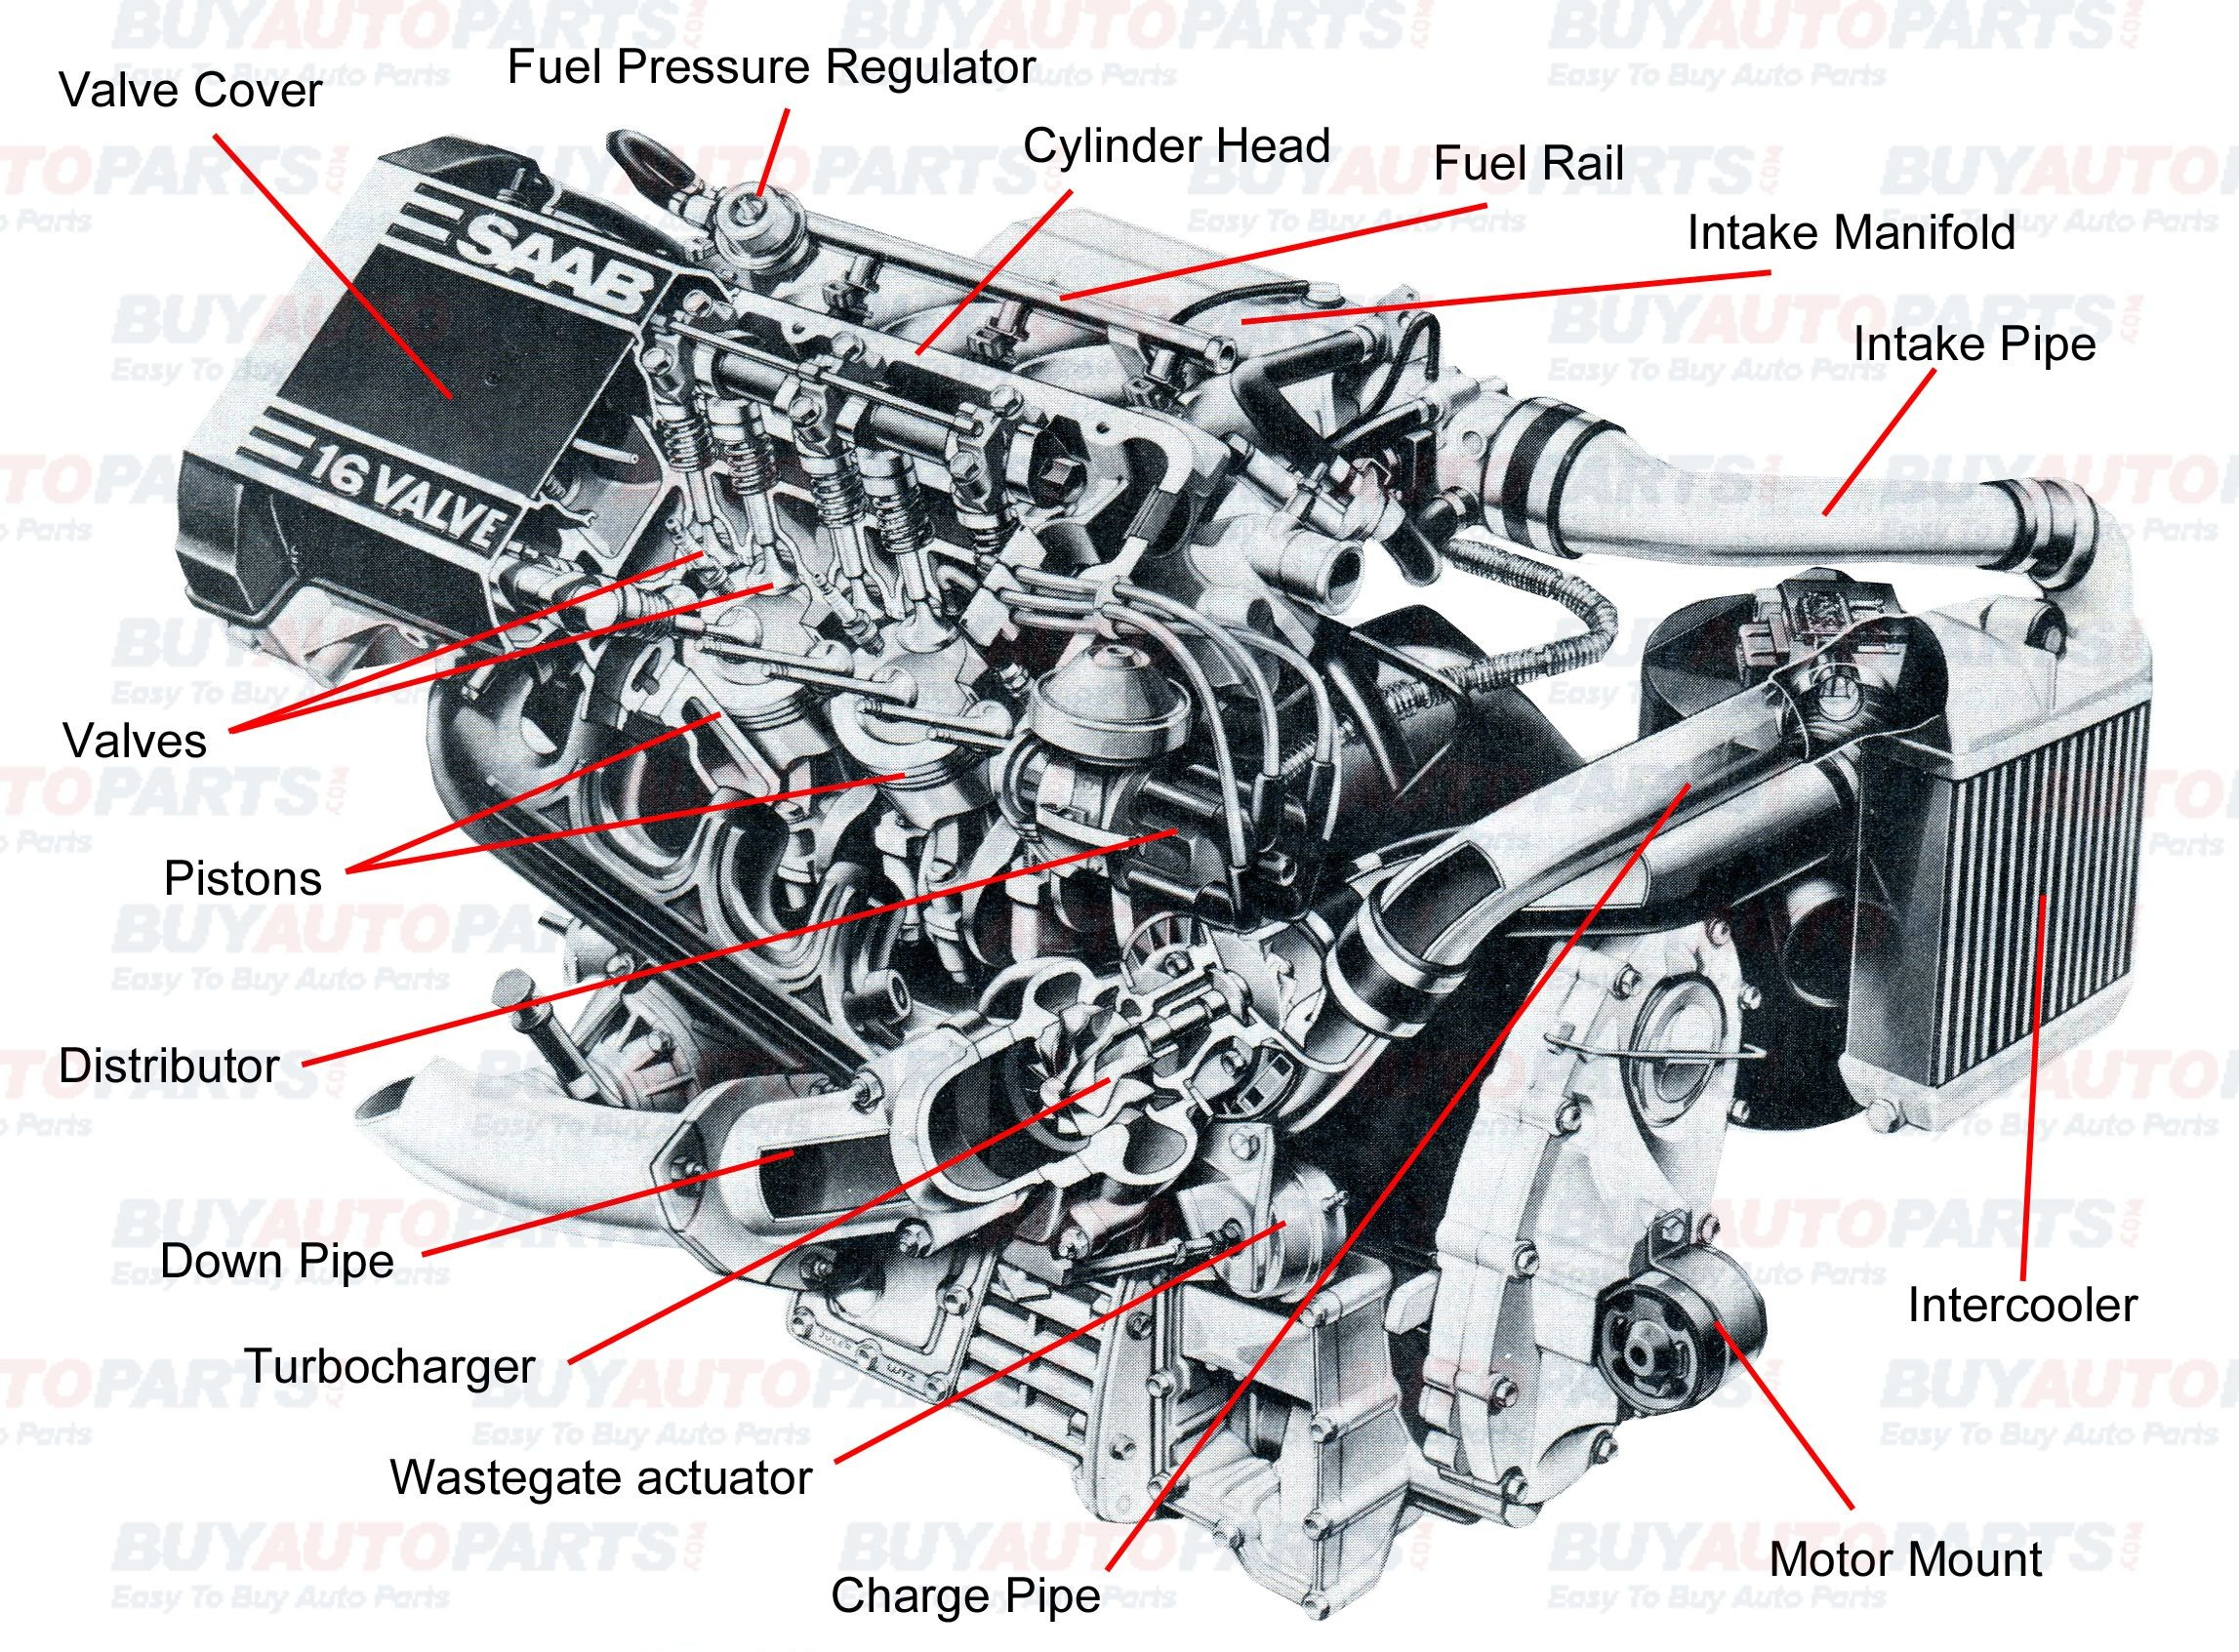 Engine Components Diagram All Internal Bustion Engines Have the Same ...